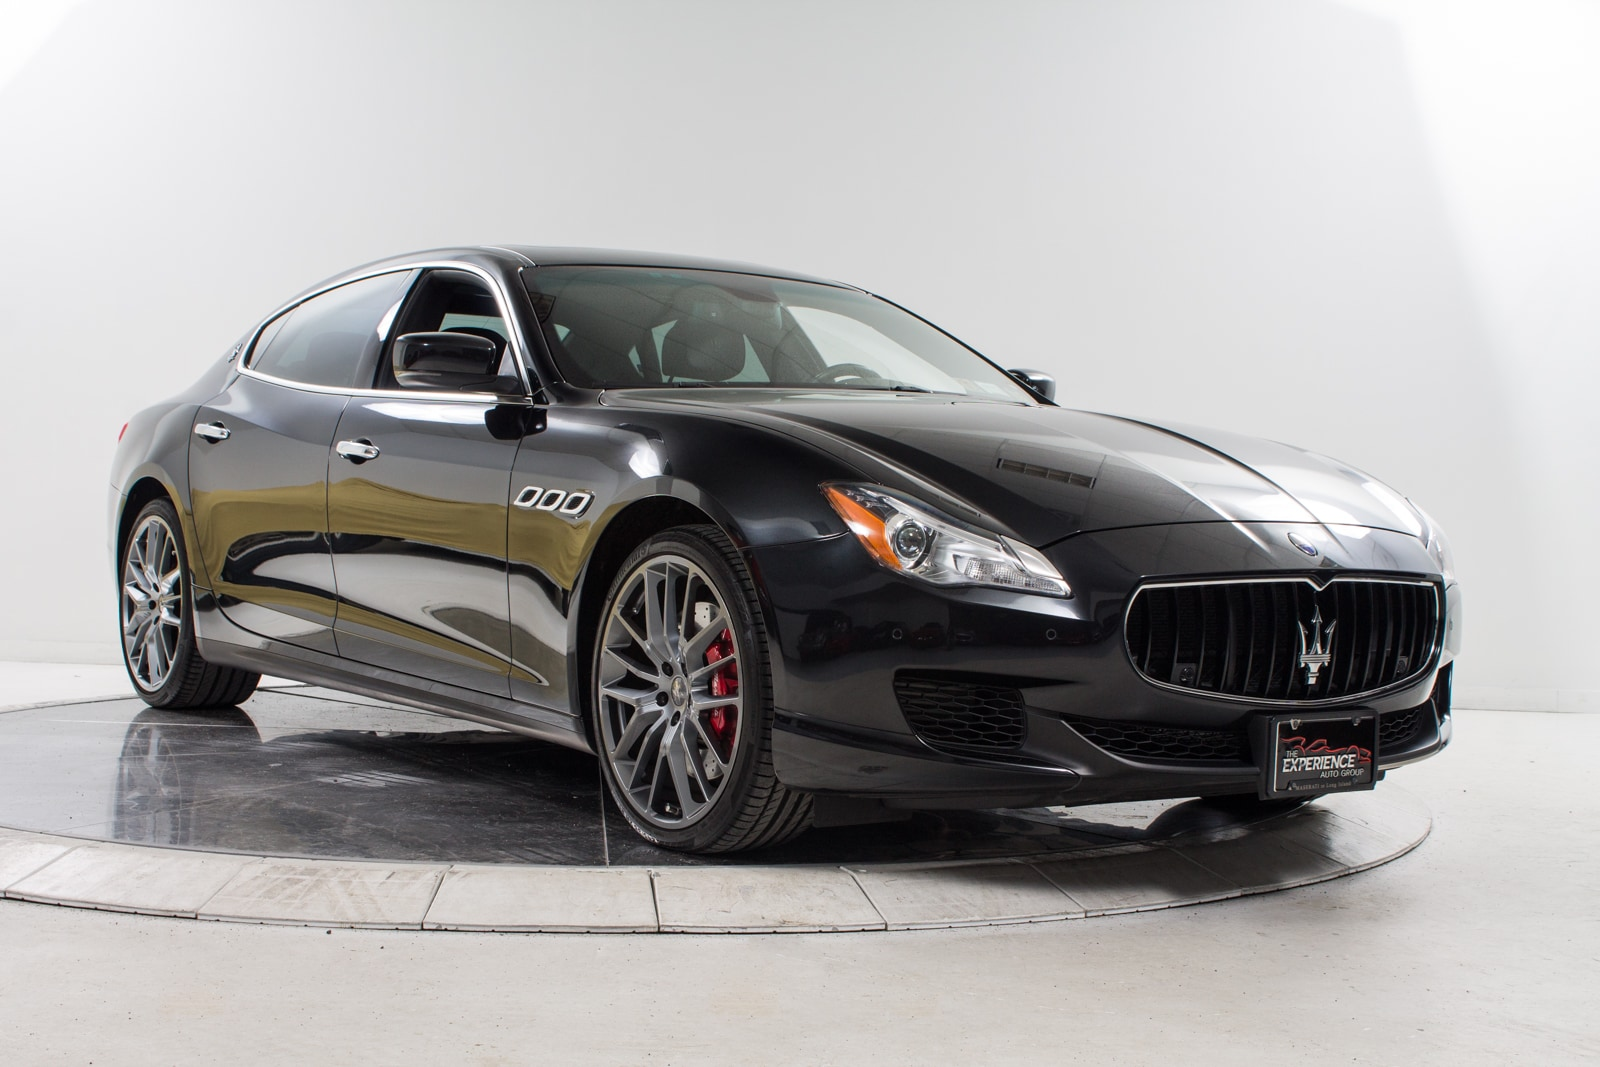 used 2014 maserati quattroporte gts for sale fort lauderdale fl zam56ppa1e1075119. Black Bedroom Furniture Sets. Home Design Ideas